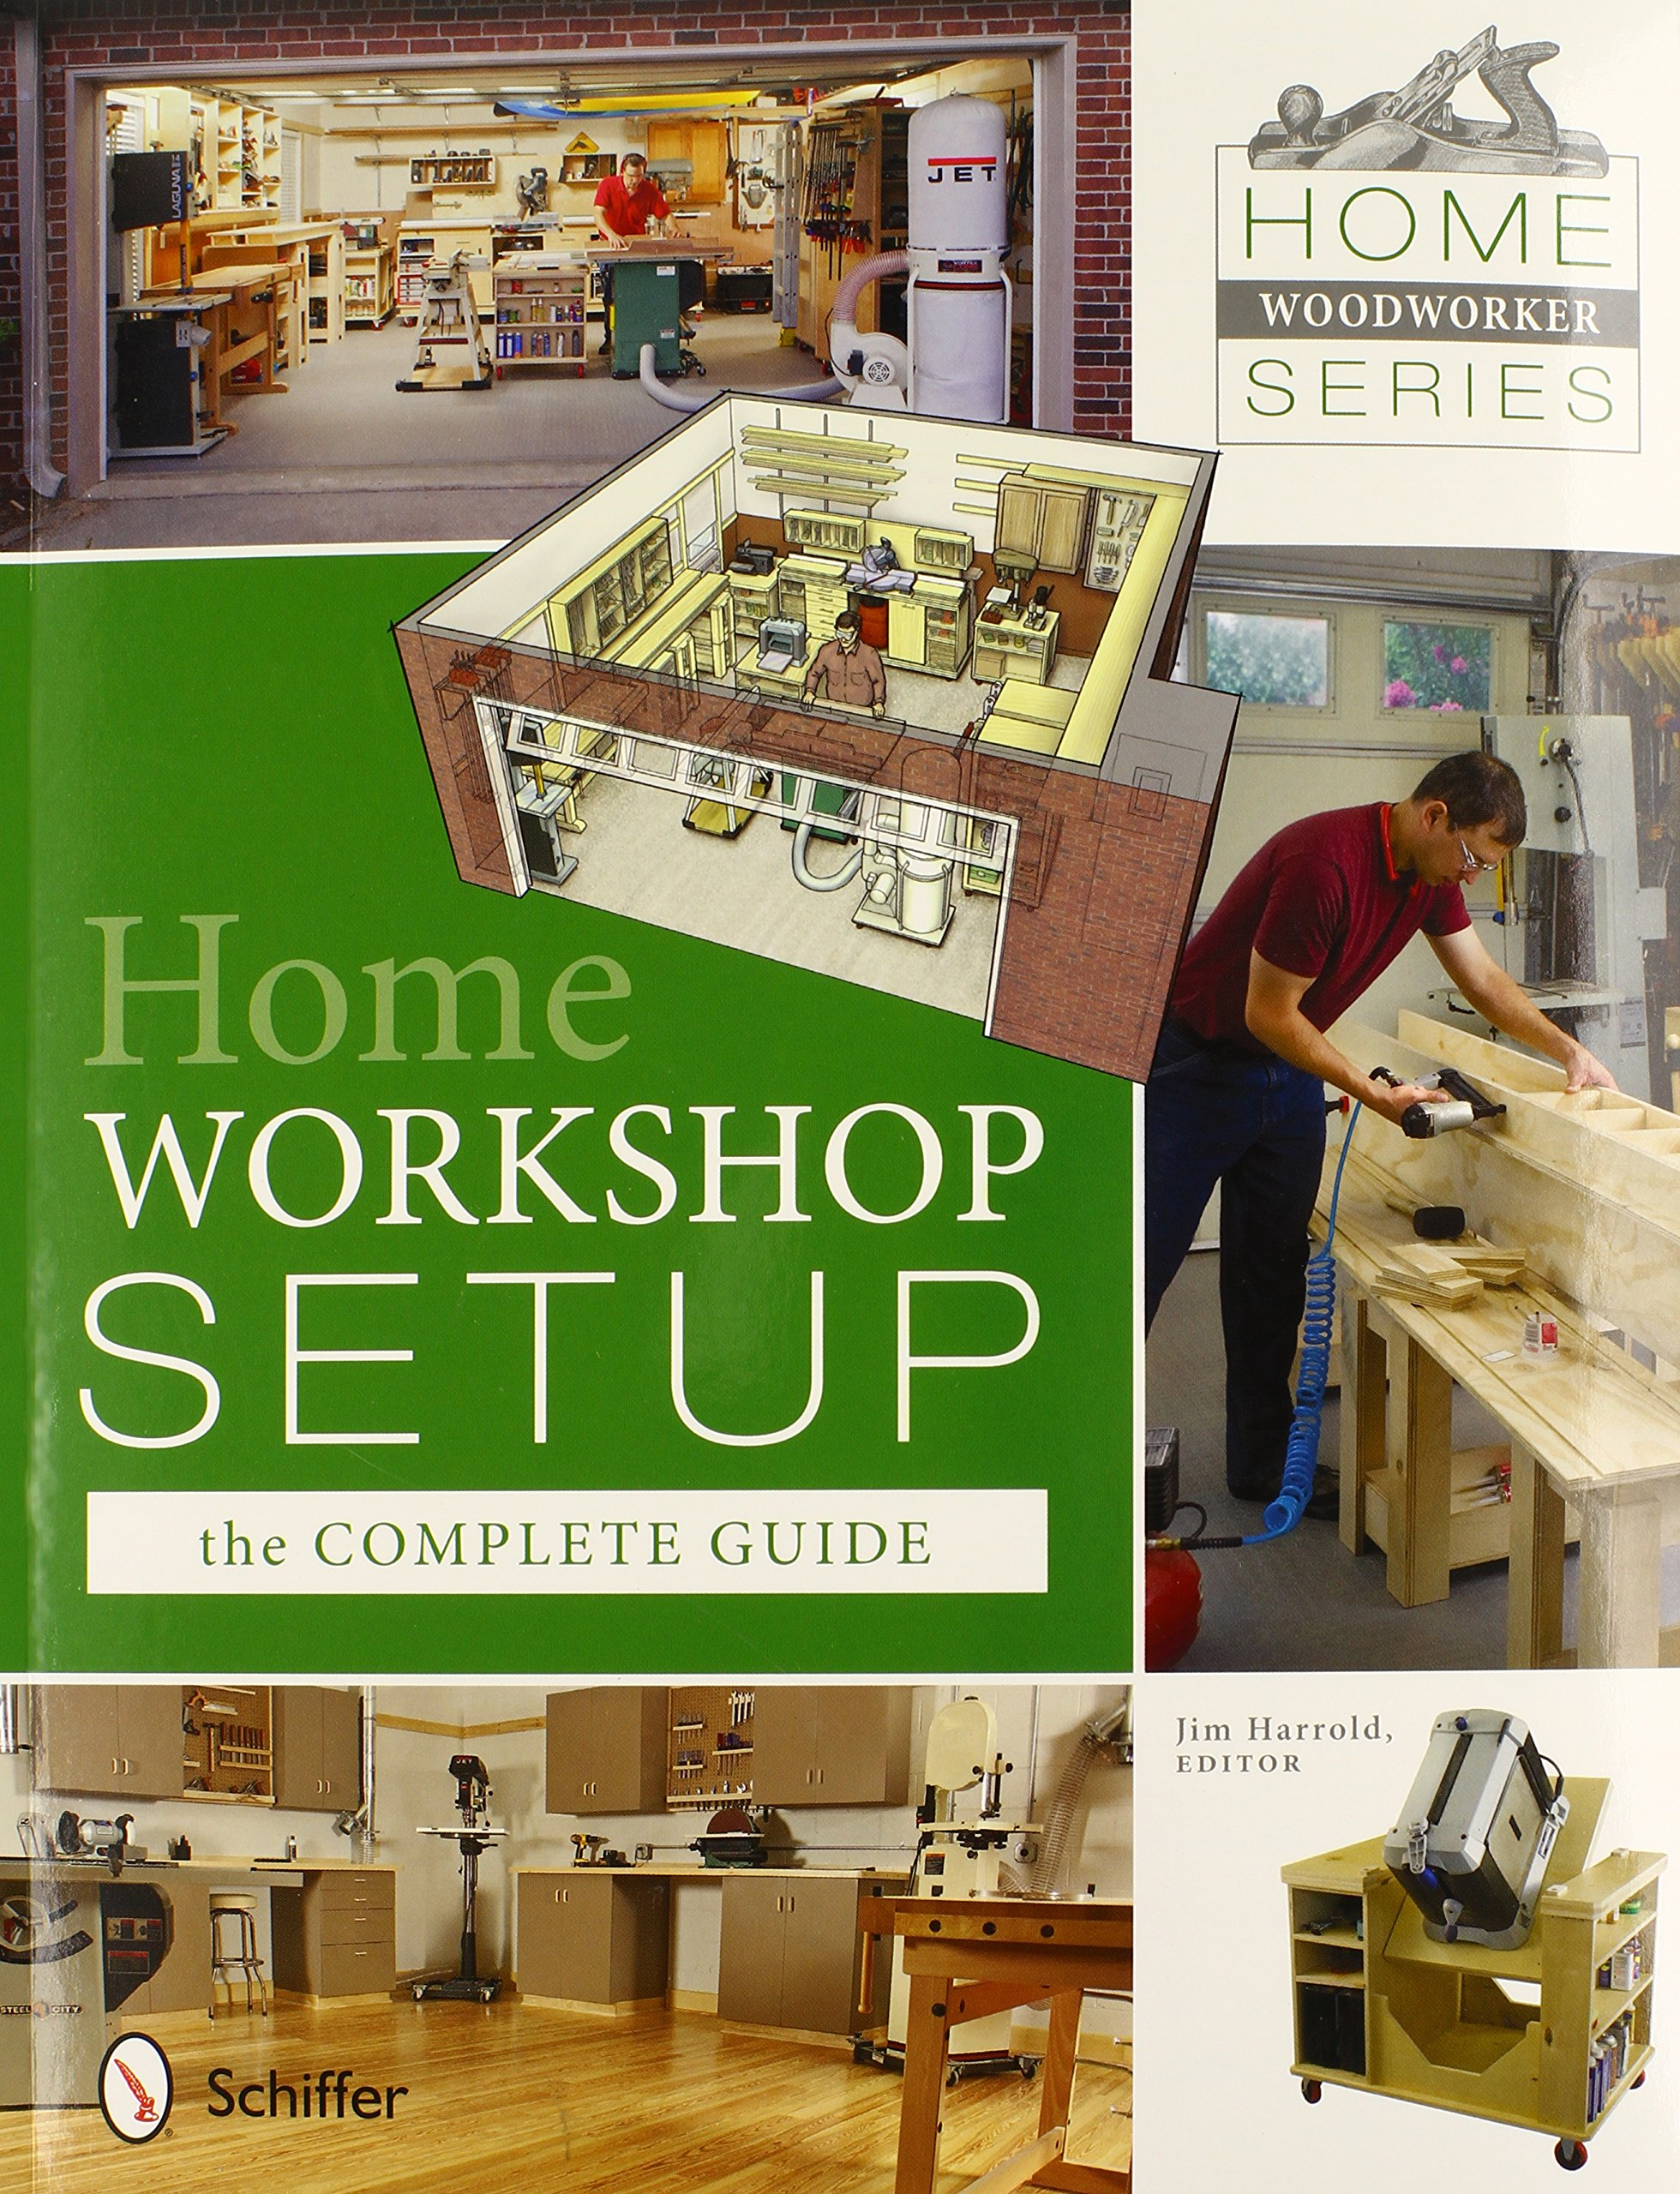 Home Woodworker Series: Home Workshop Setup - The Complete ... on ideal market layout, ideal pantry layout, ideal living room layout, ideal bar layout, ideal garage layout, ideal bedroom layout, ideal family room layout,